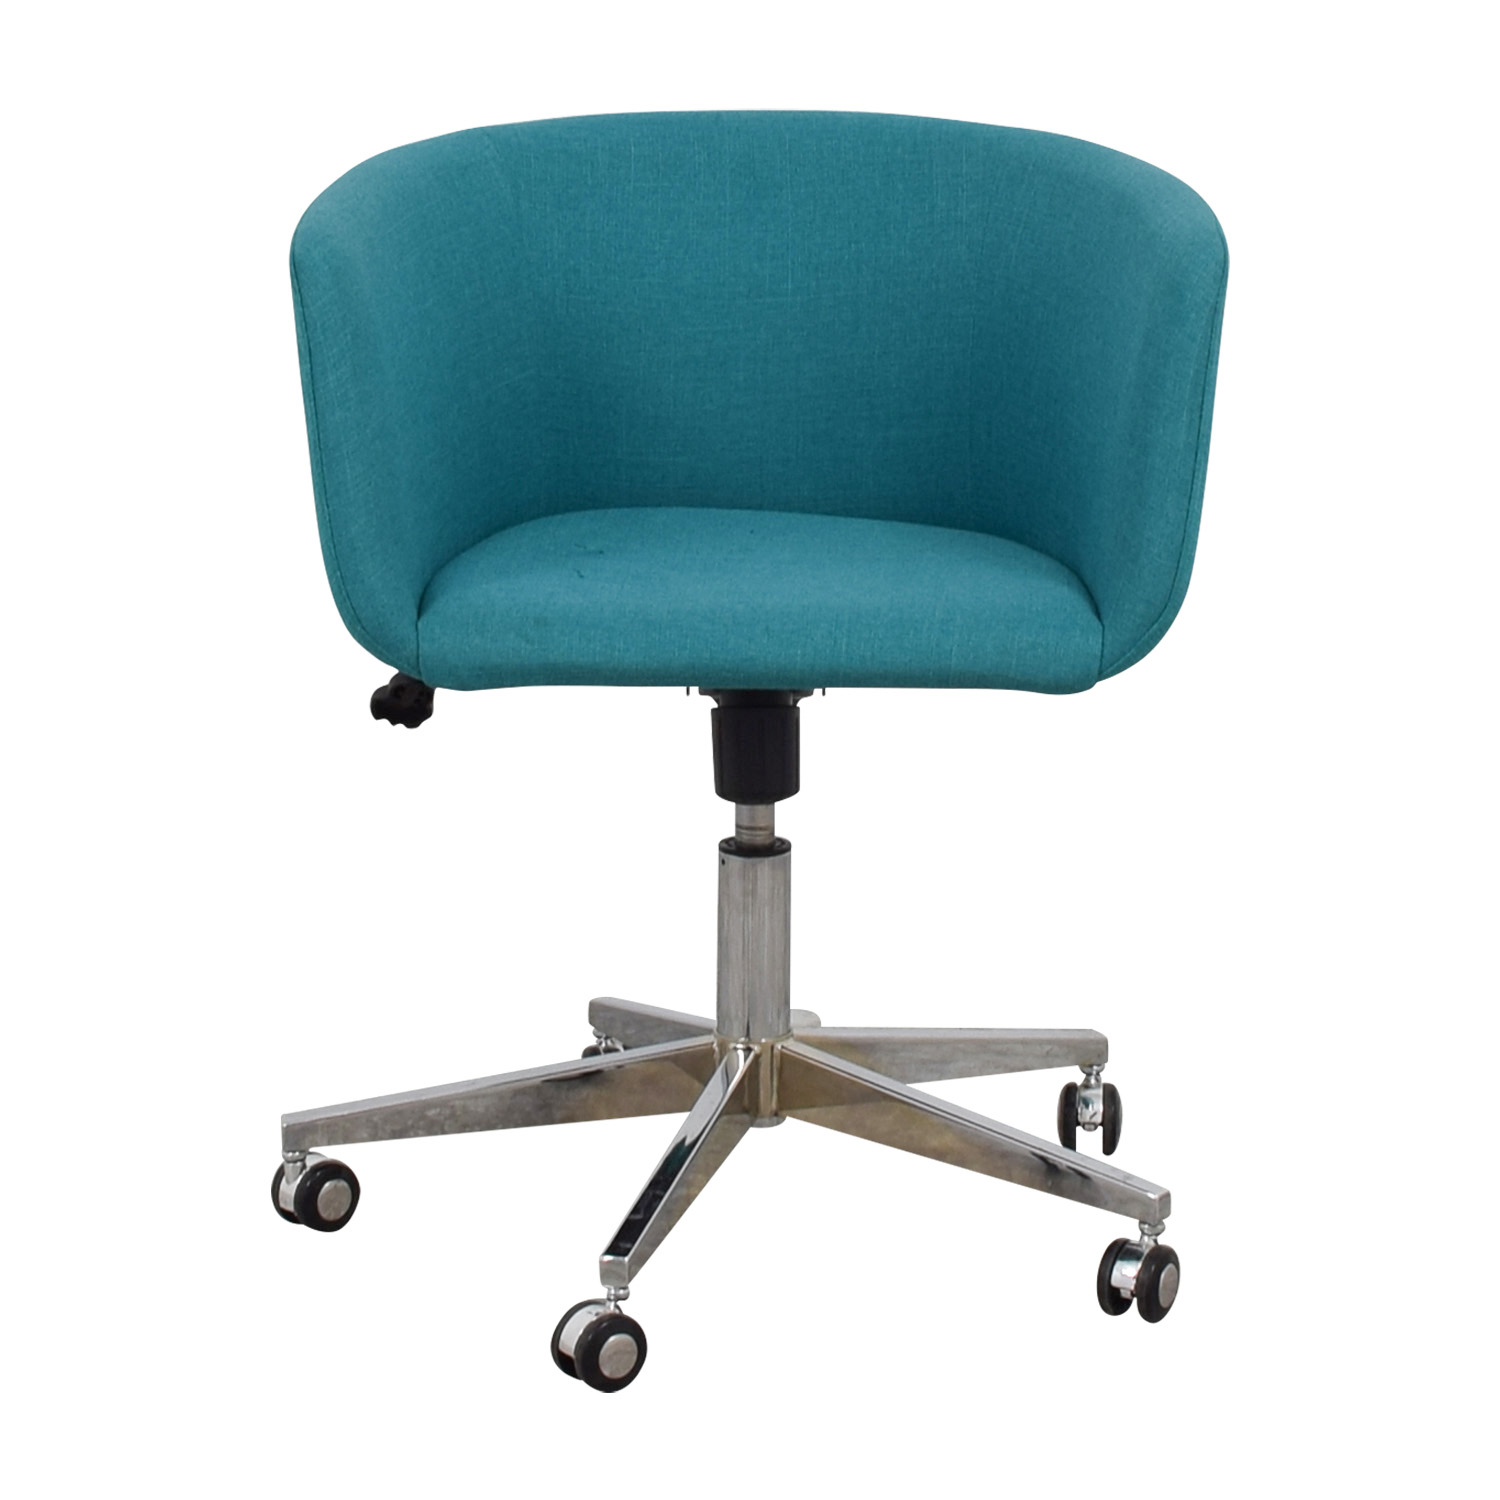 Cb2 Teal Desk Chair With Castors Nyc